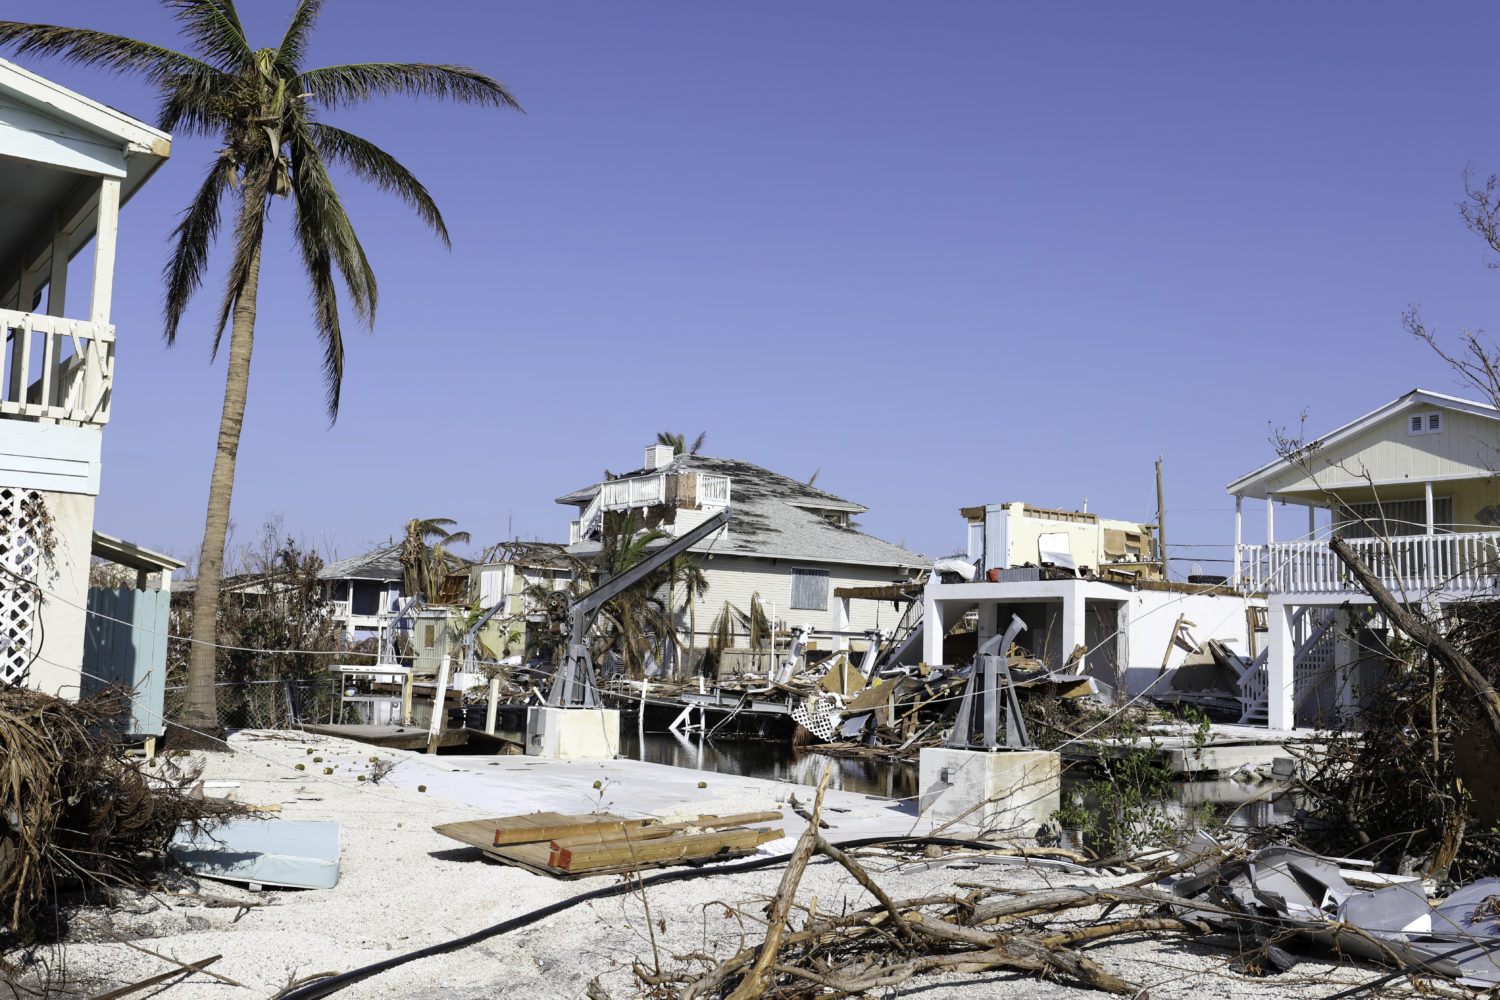 Damage left behind by Hurricane Laura